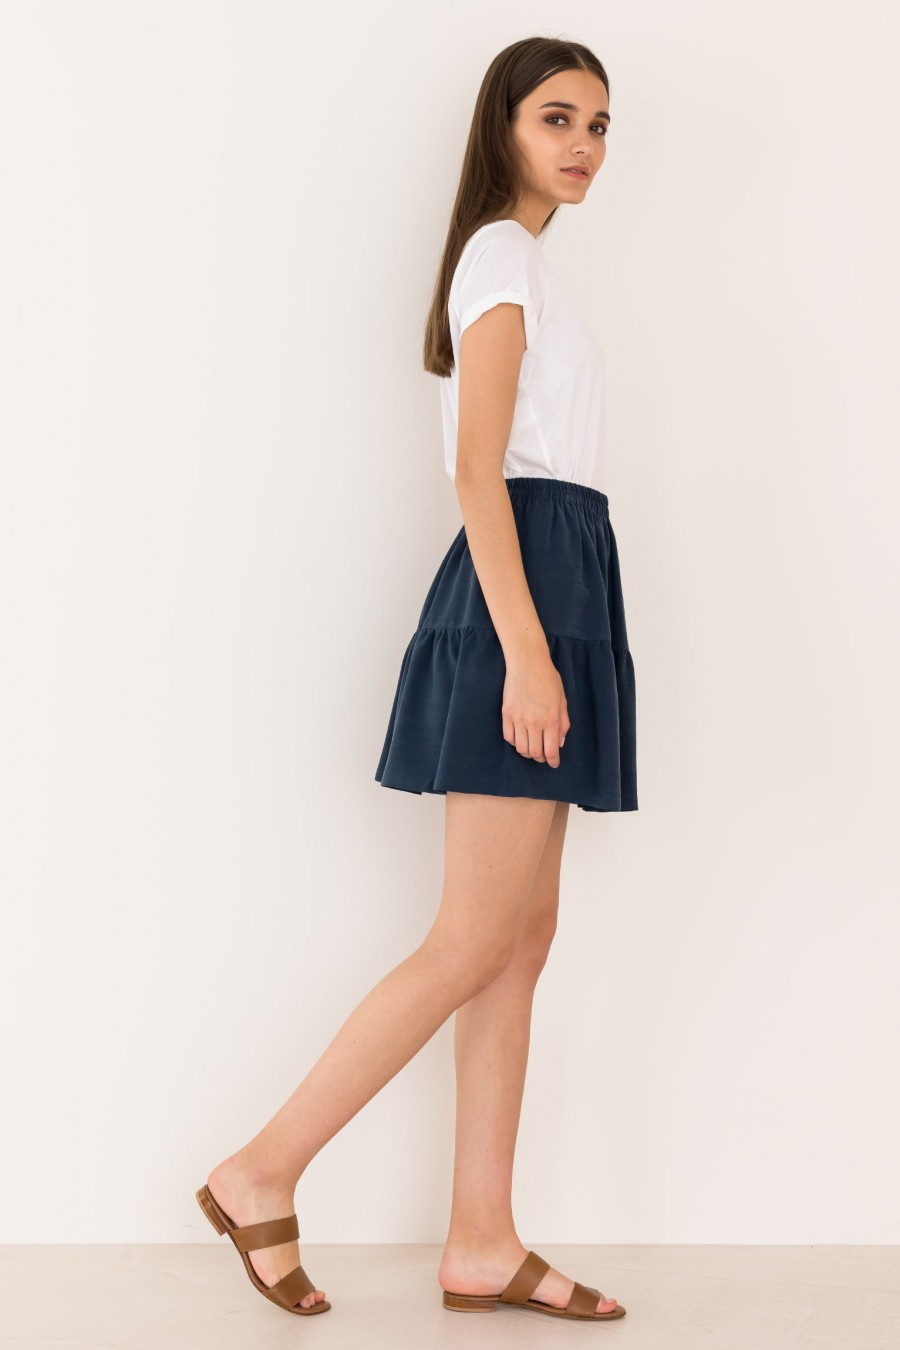 Curling skirt with ruffle